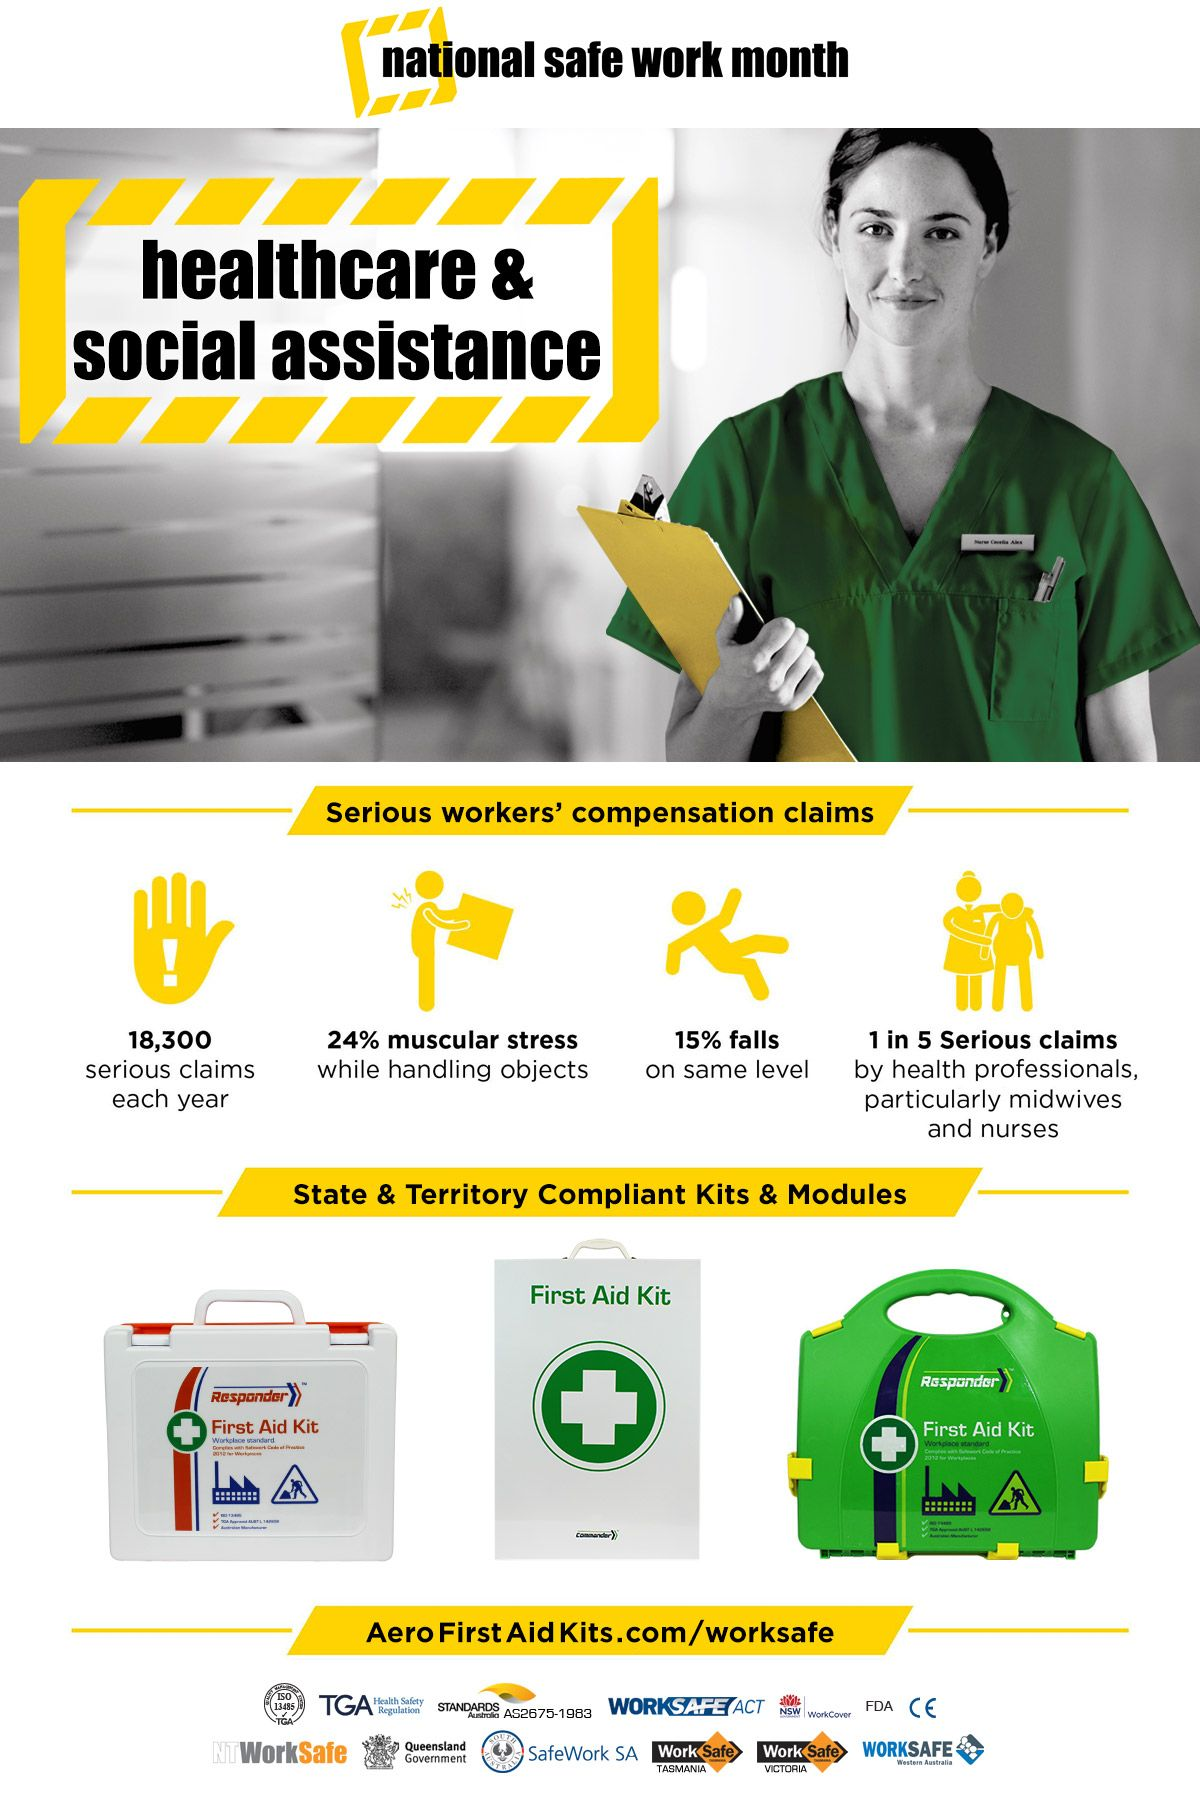 Healthcare & Social Assistance First Aid Kits National